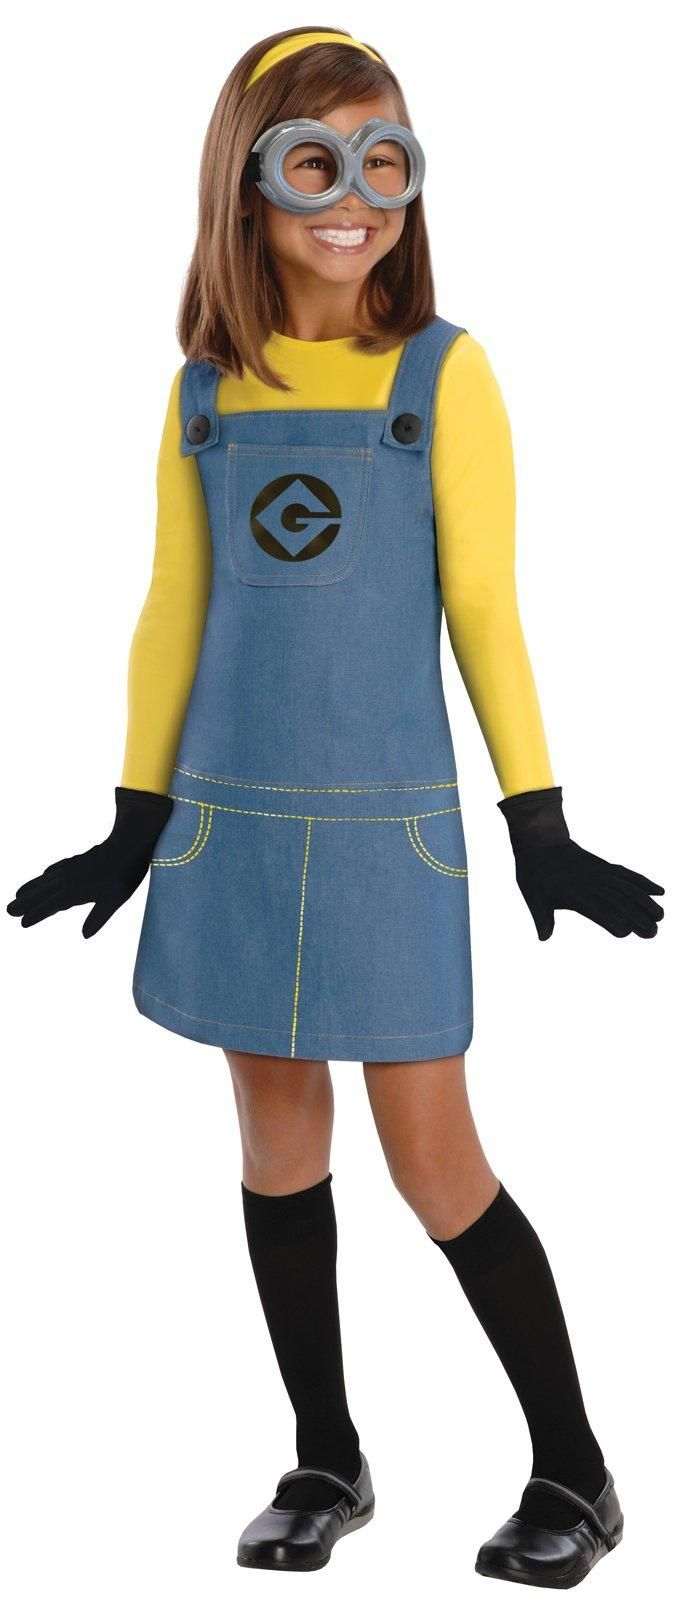 Despicable Me 2 - Female Minion Child Costume from BirthdayExpress.com